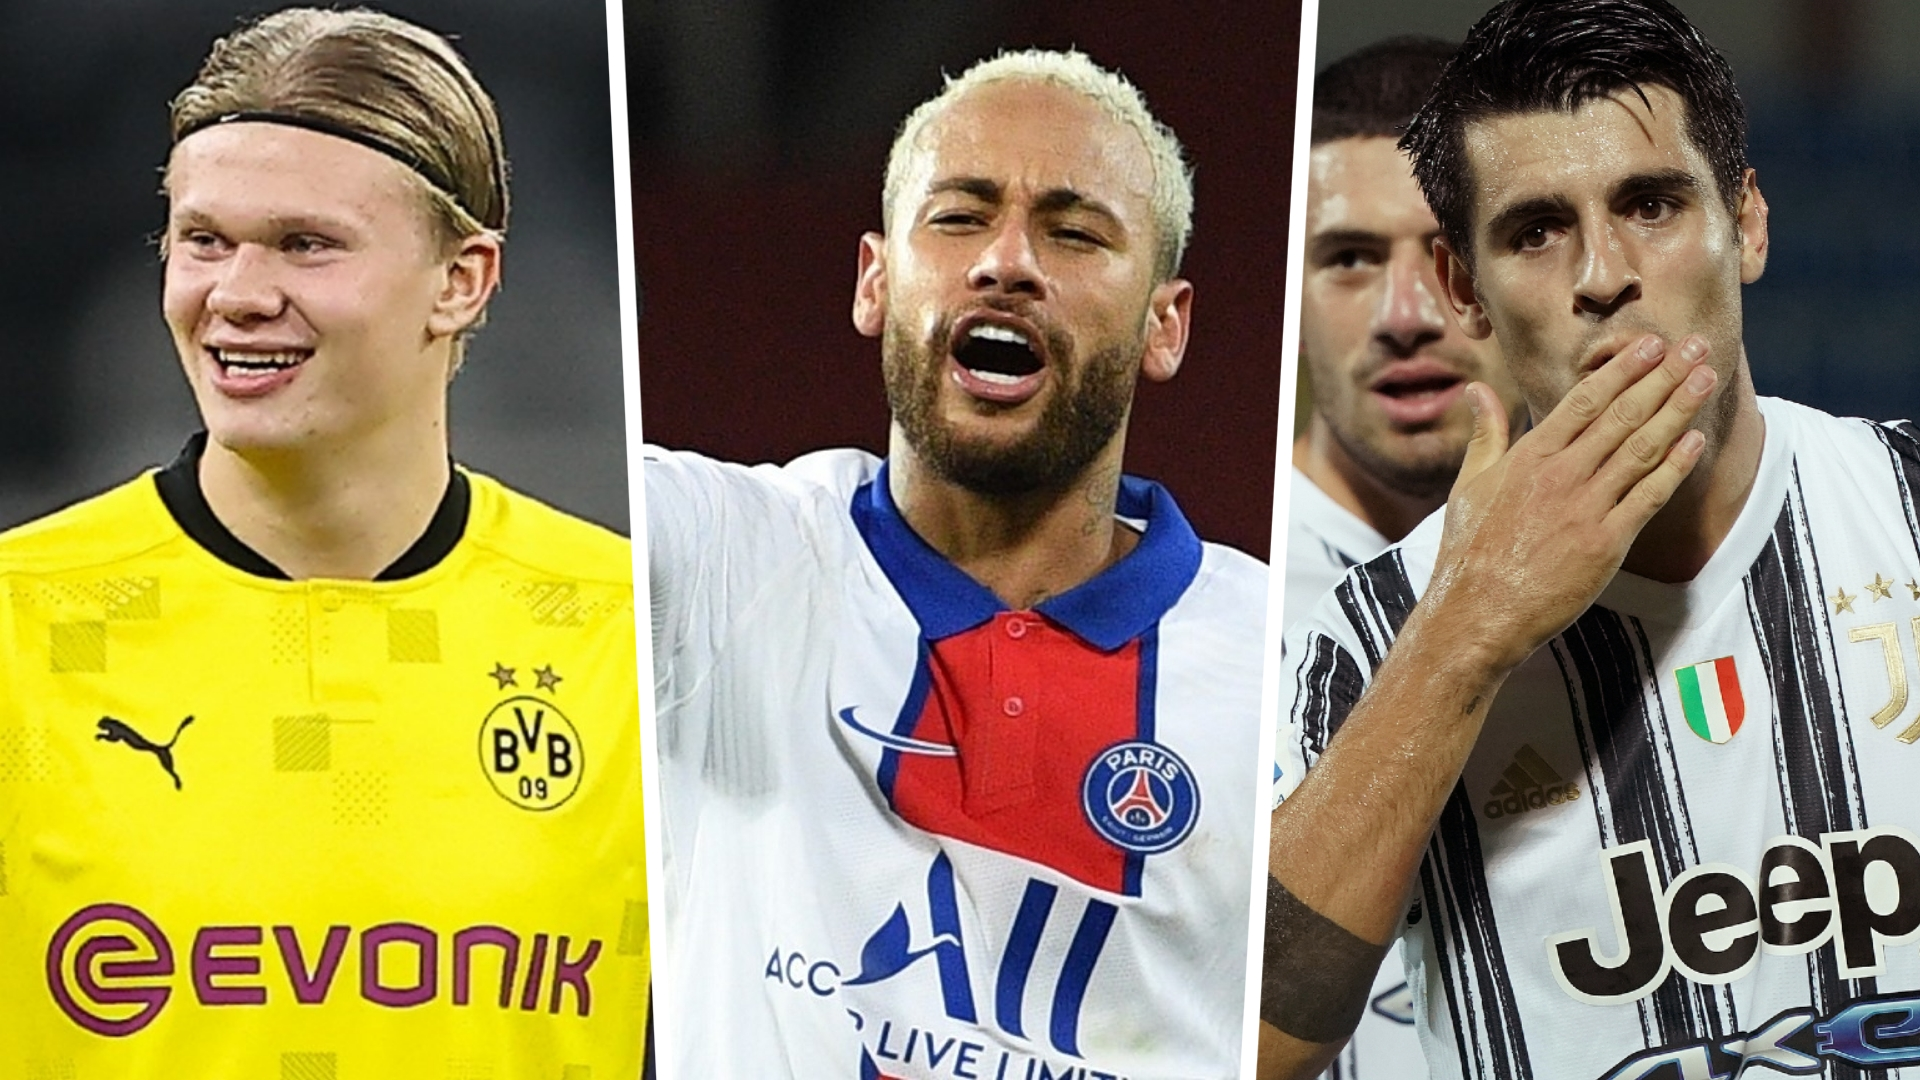 Champions League 2020-21 top scorers: Haaland, Neymar and Morata lead the way